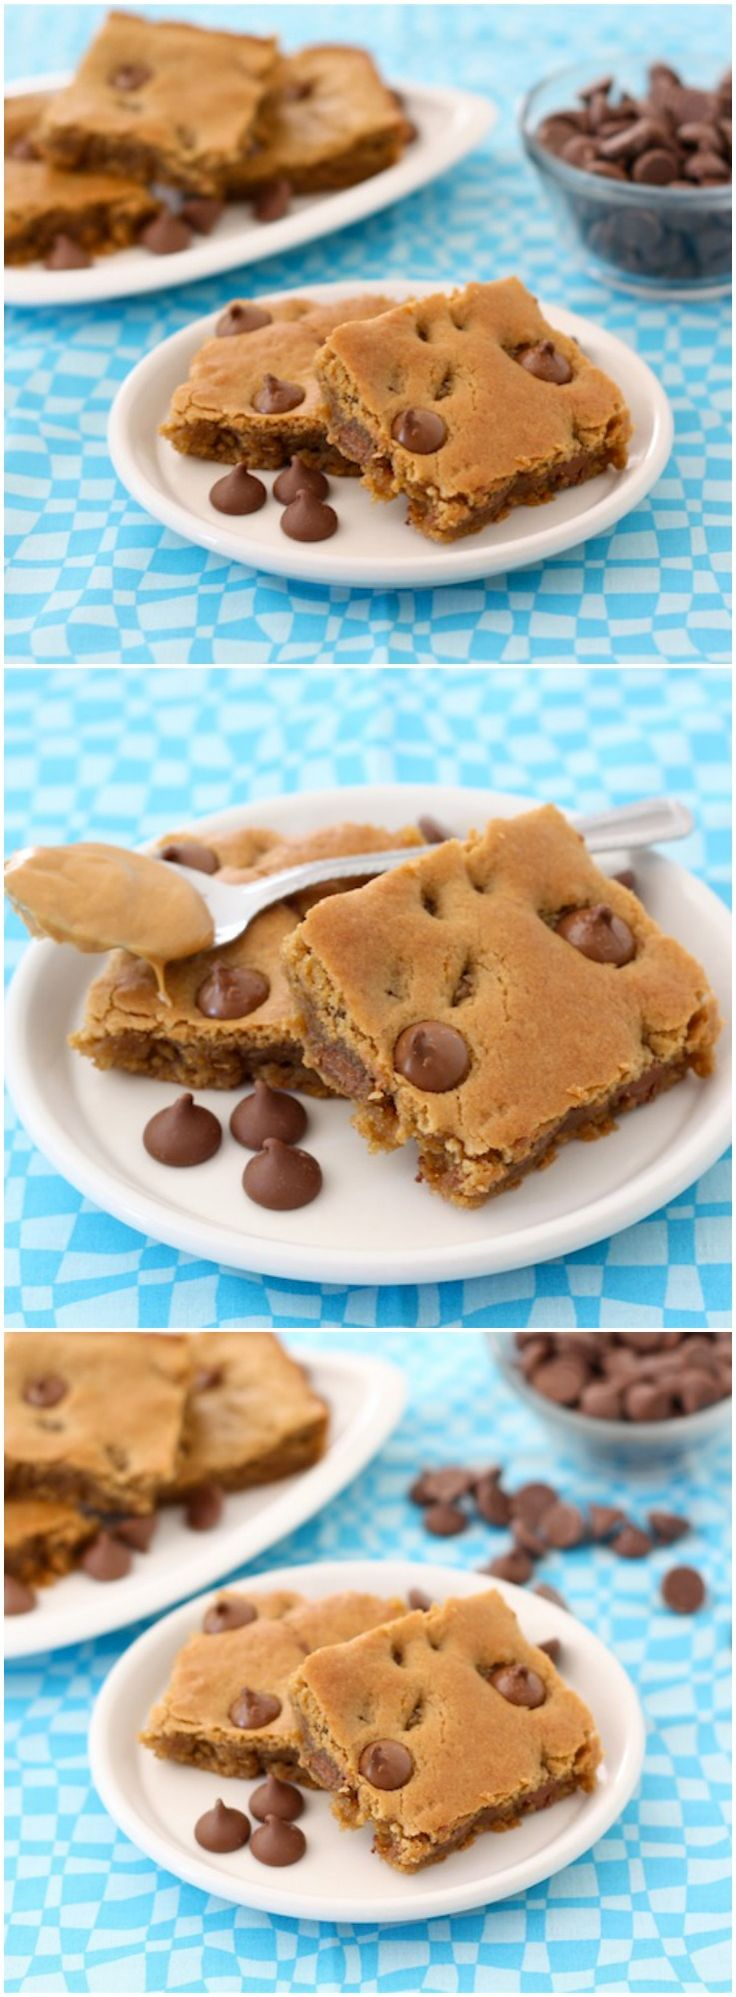 Recipe: Peanut Butter Chocolate Chip Blondies #dessert